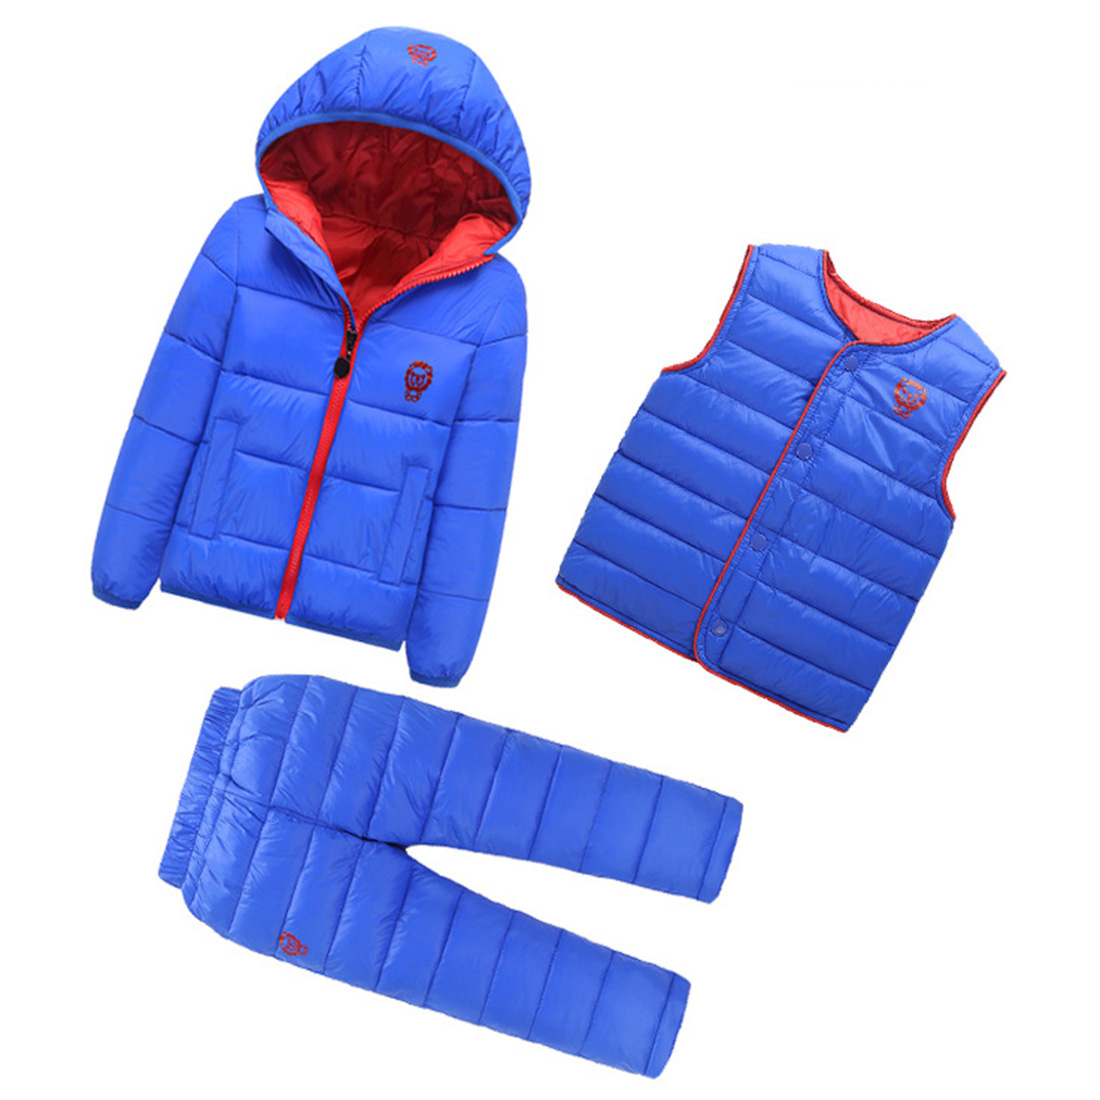 3-Pcs-Lot-Winter-Baby-Girls-Boys-Clothes-Sets-Children-Down-Cotton-padded-Coat-6-Colors-6-Size-1